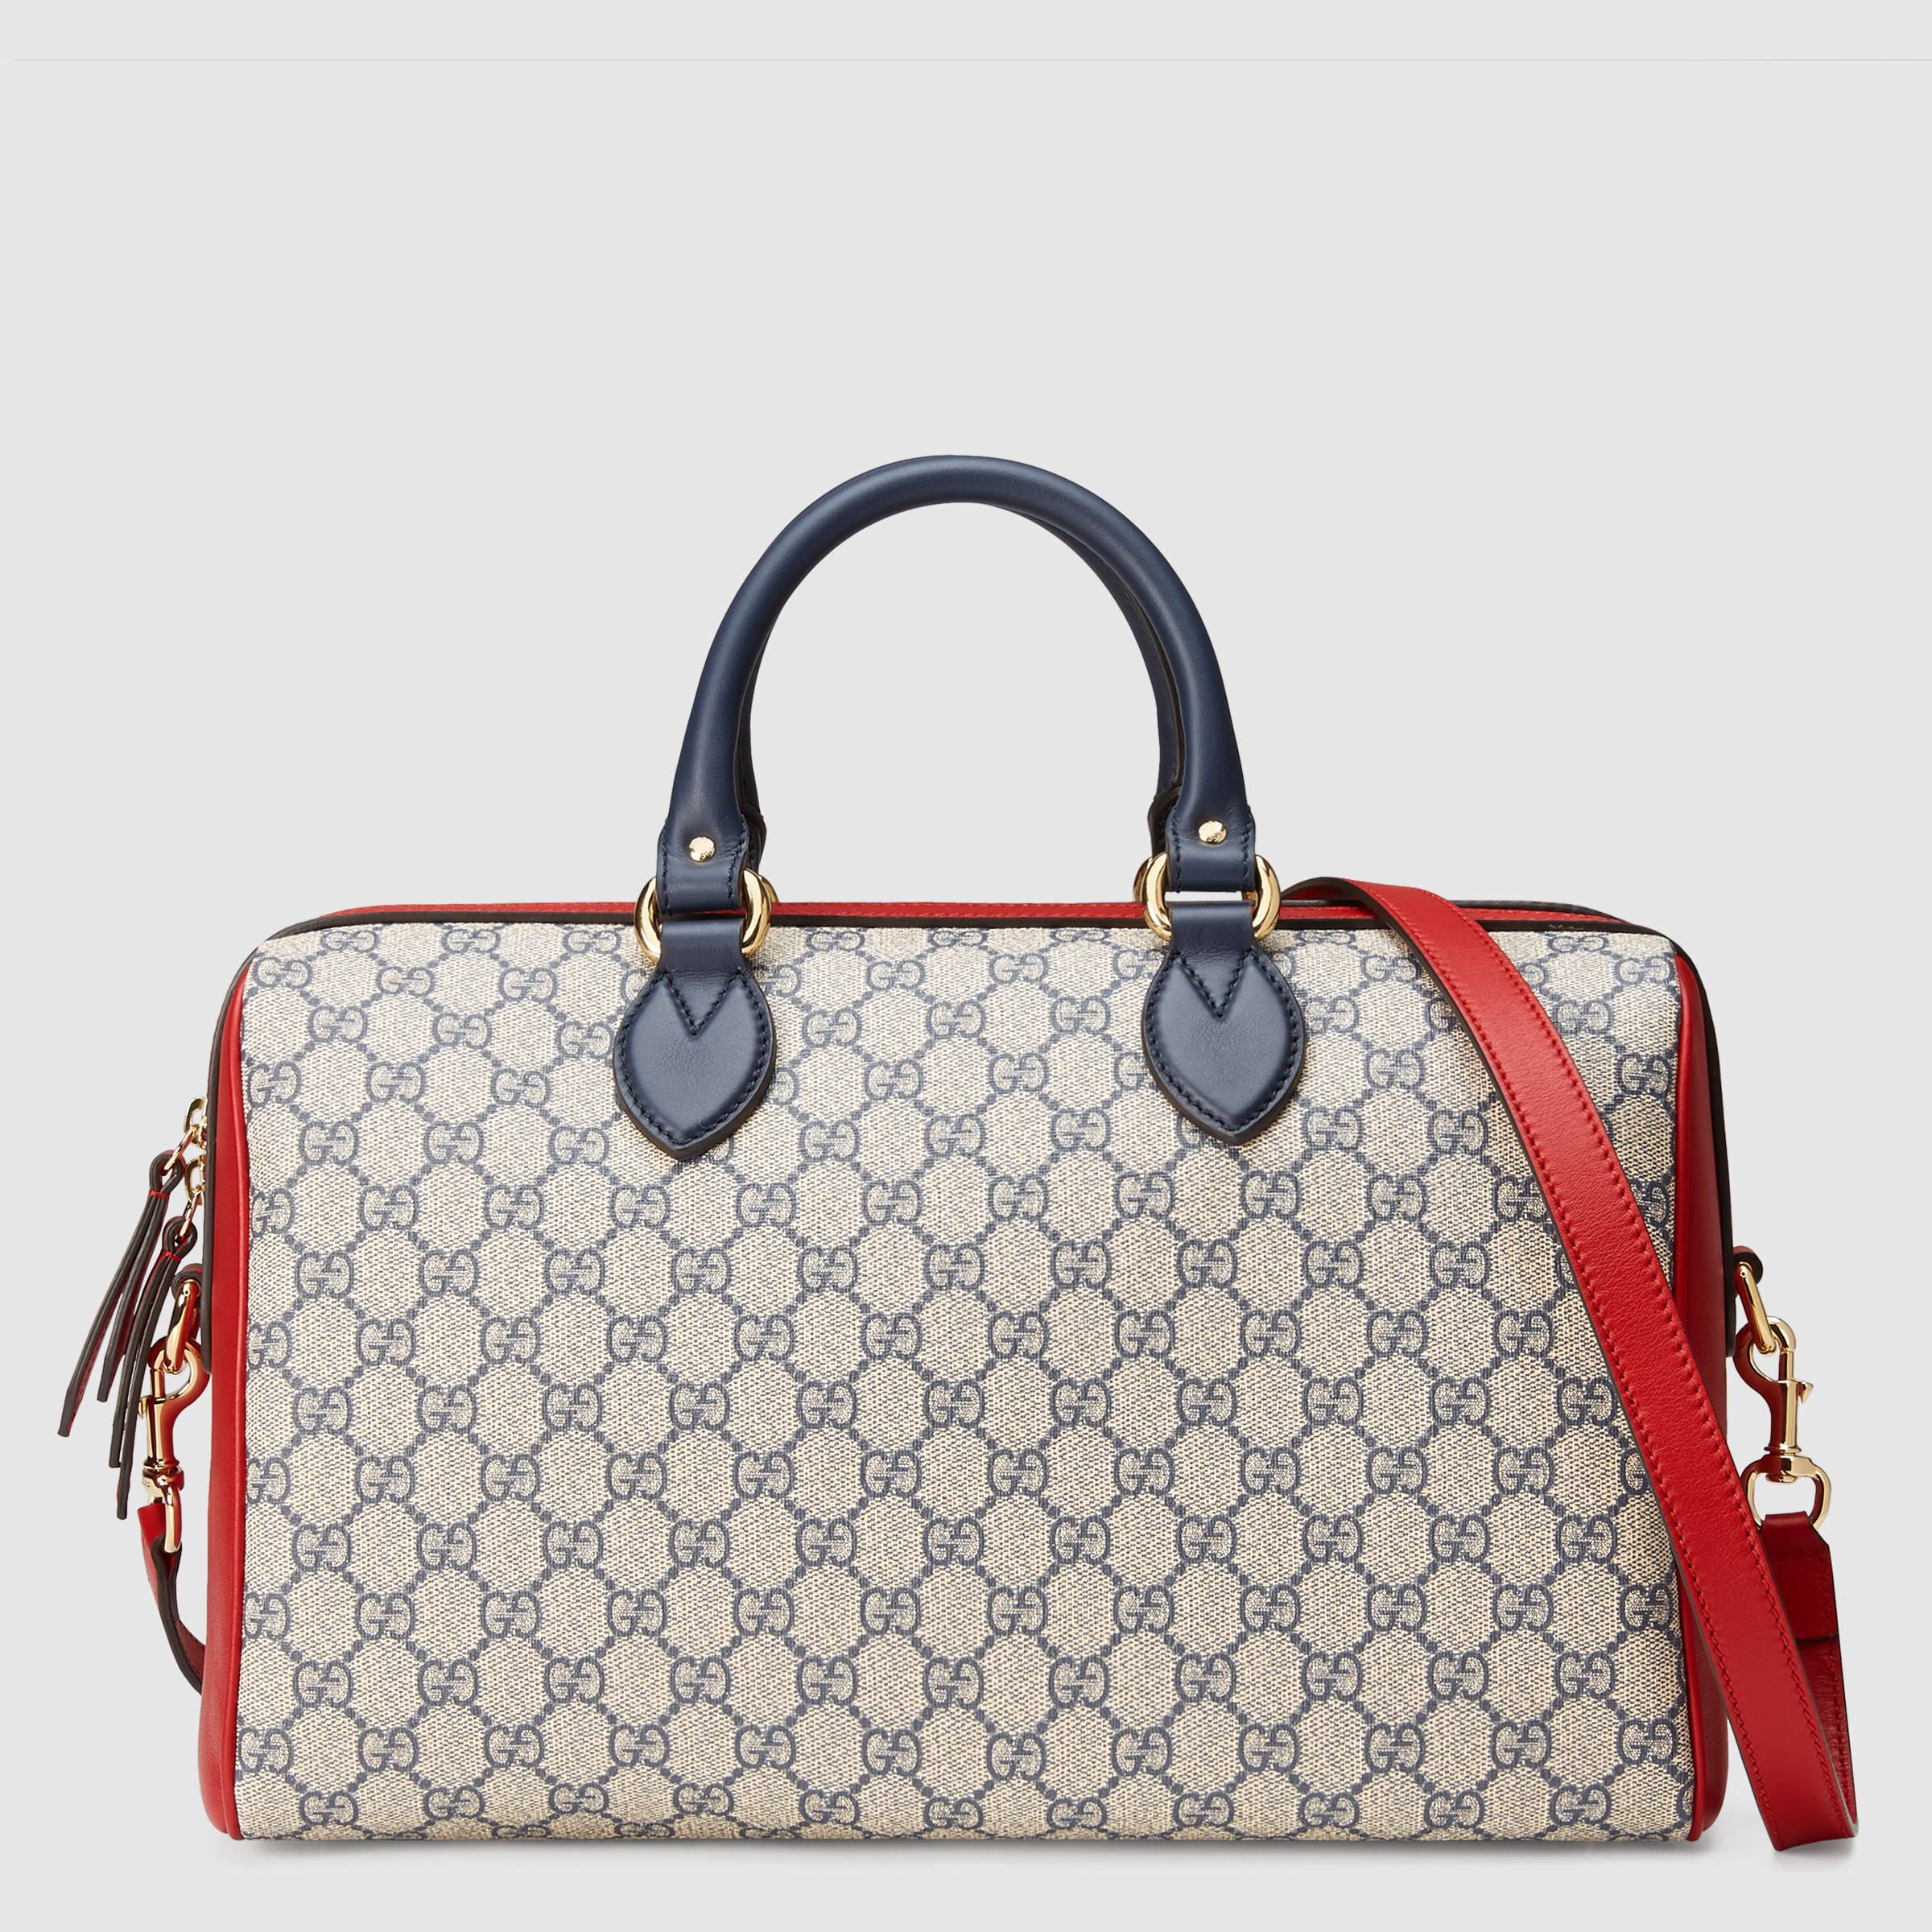 09737b5f949 Lyst - Gucci GG Supreme Canvas And Leather Top-Handle Bag